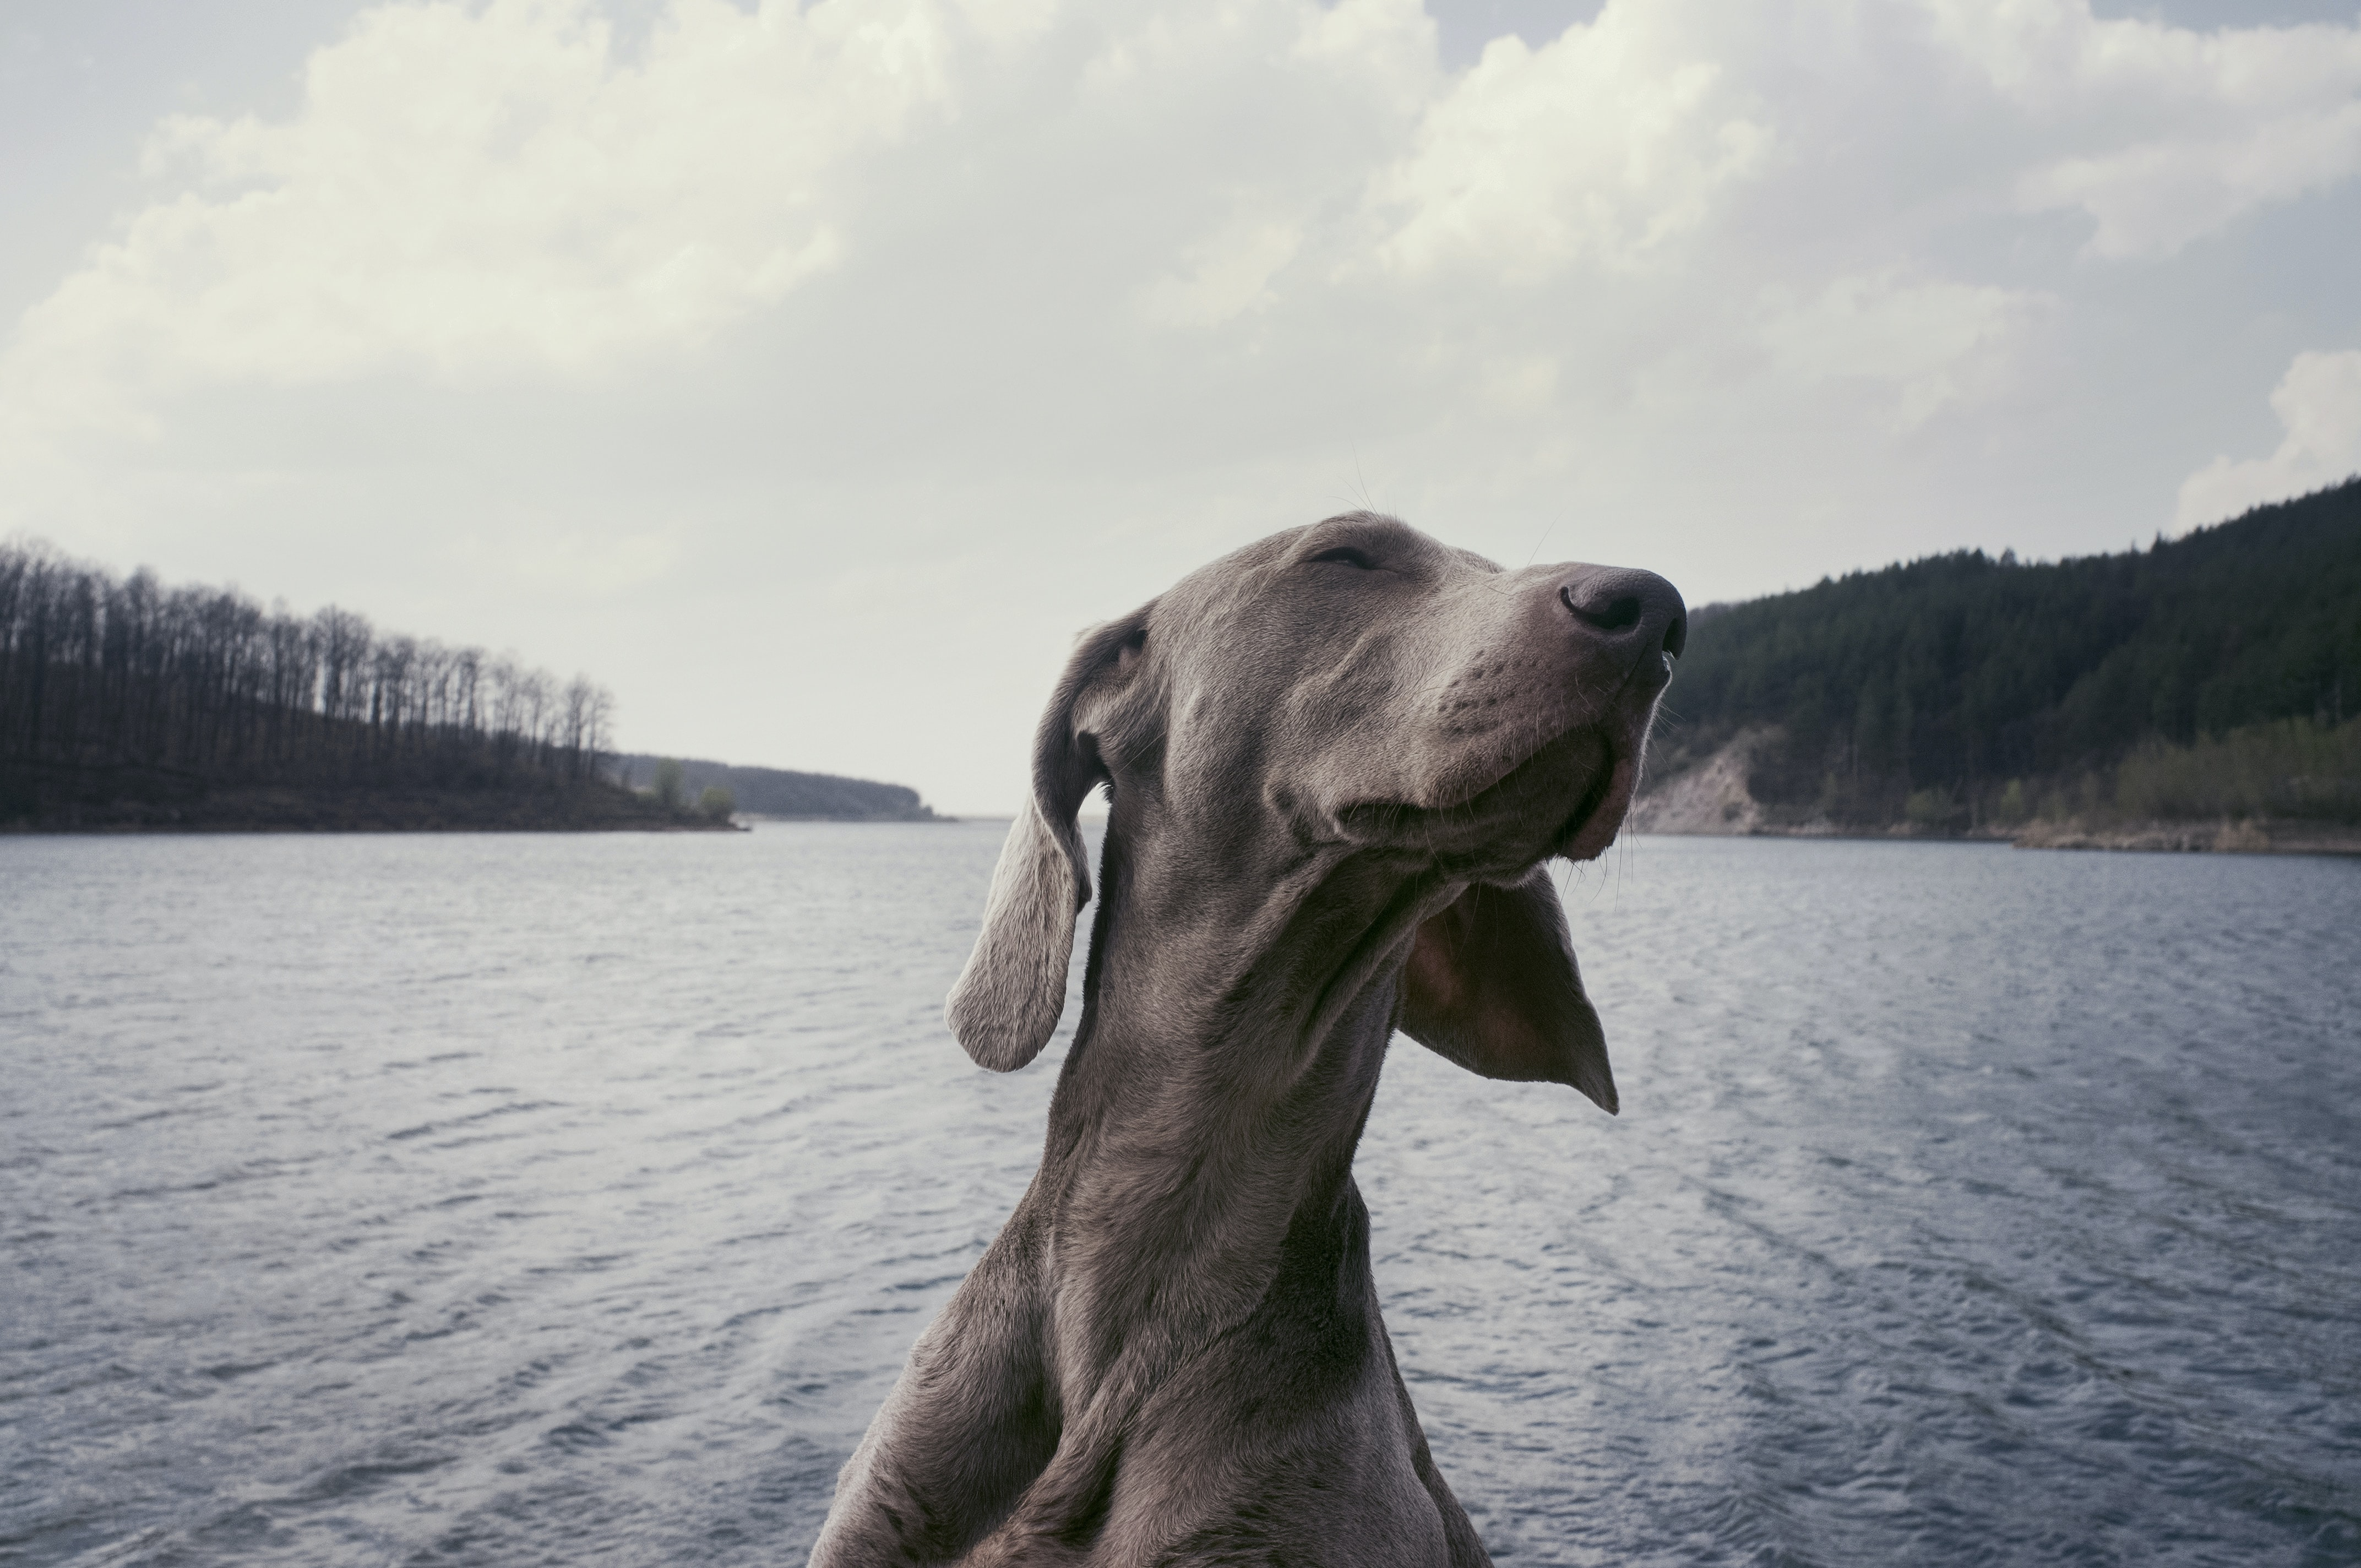 A Weimaraner over a choppy lake on a cloudy day